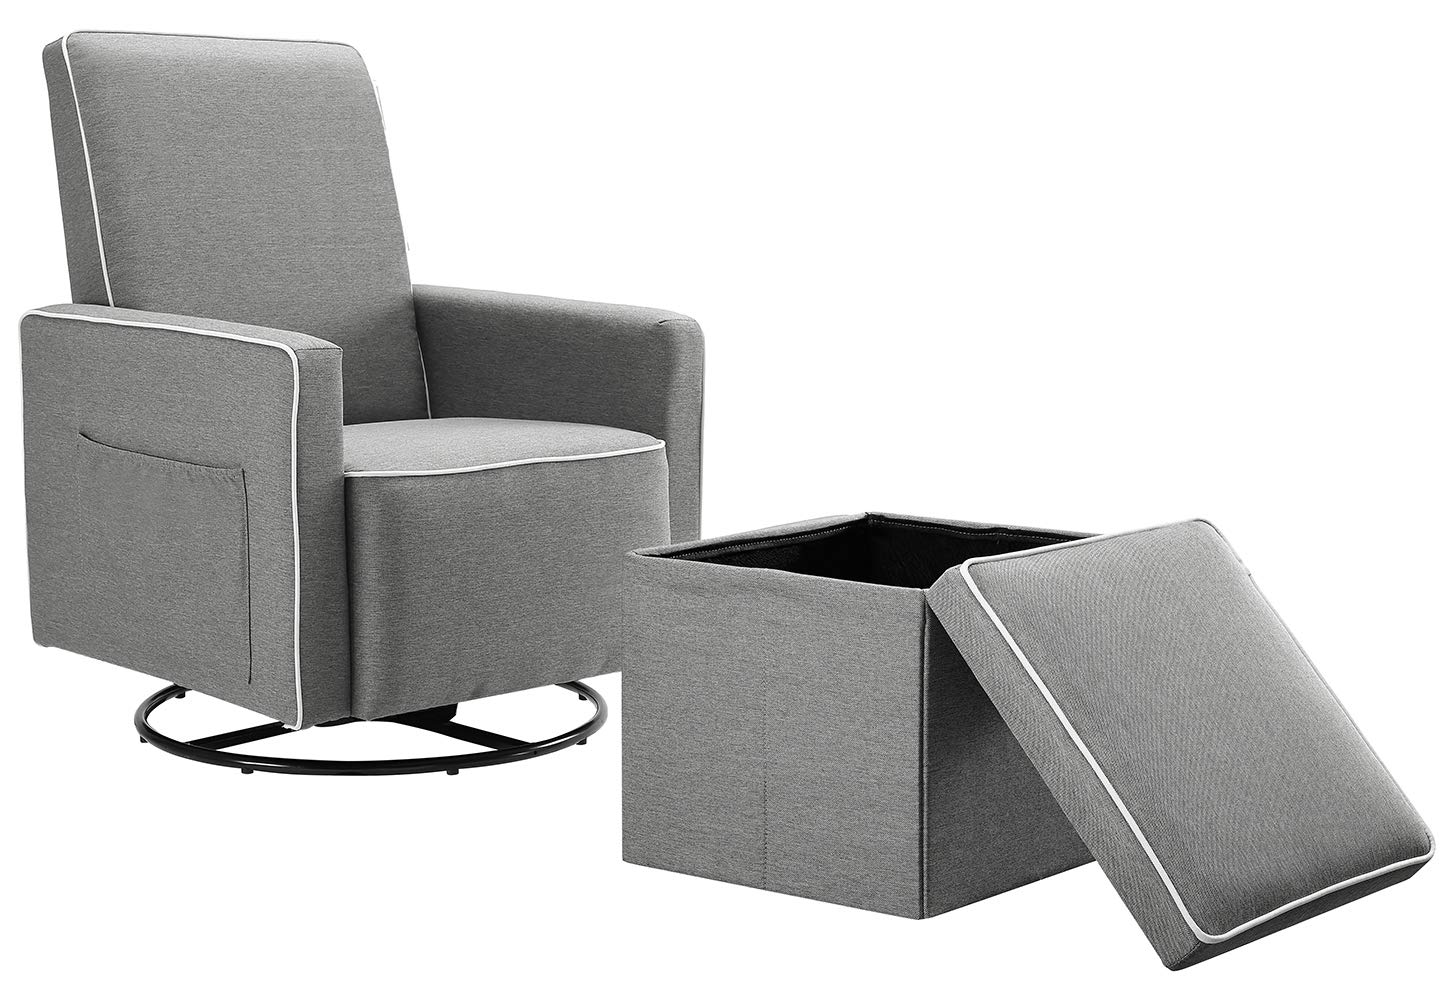 Angel Line Angel Line Sophia Upholstered Swivel Glider w Storage Ottoman, Gray, Grey